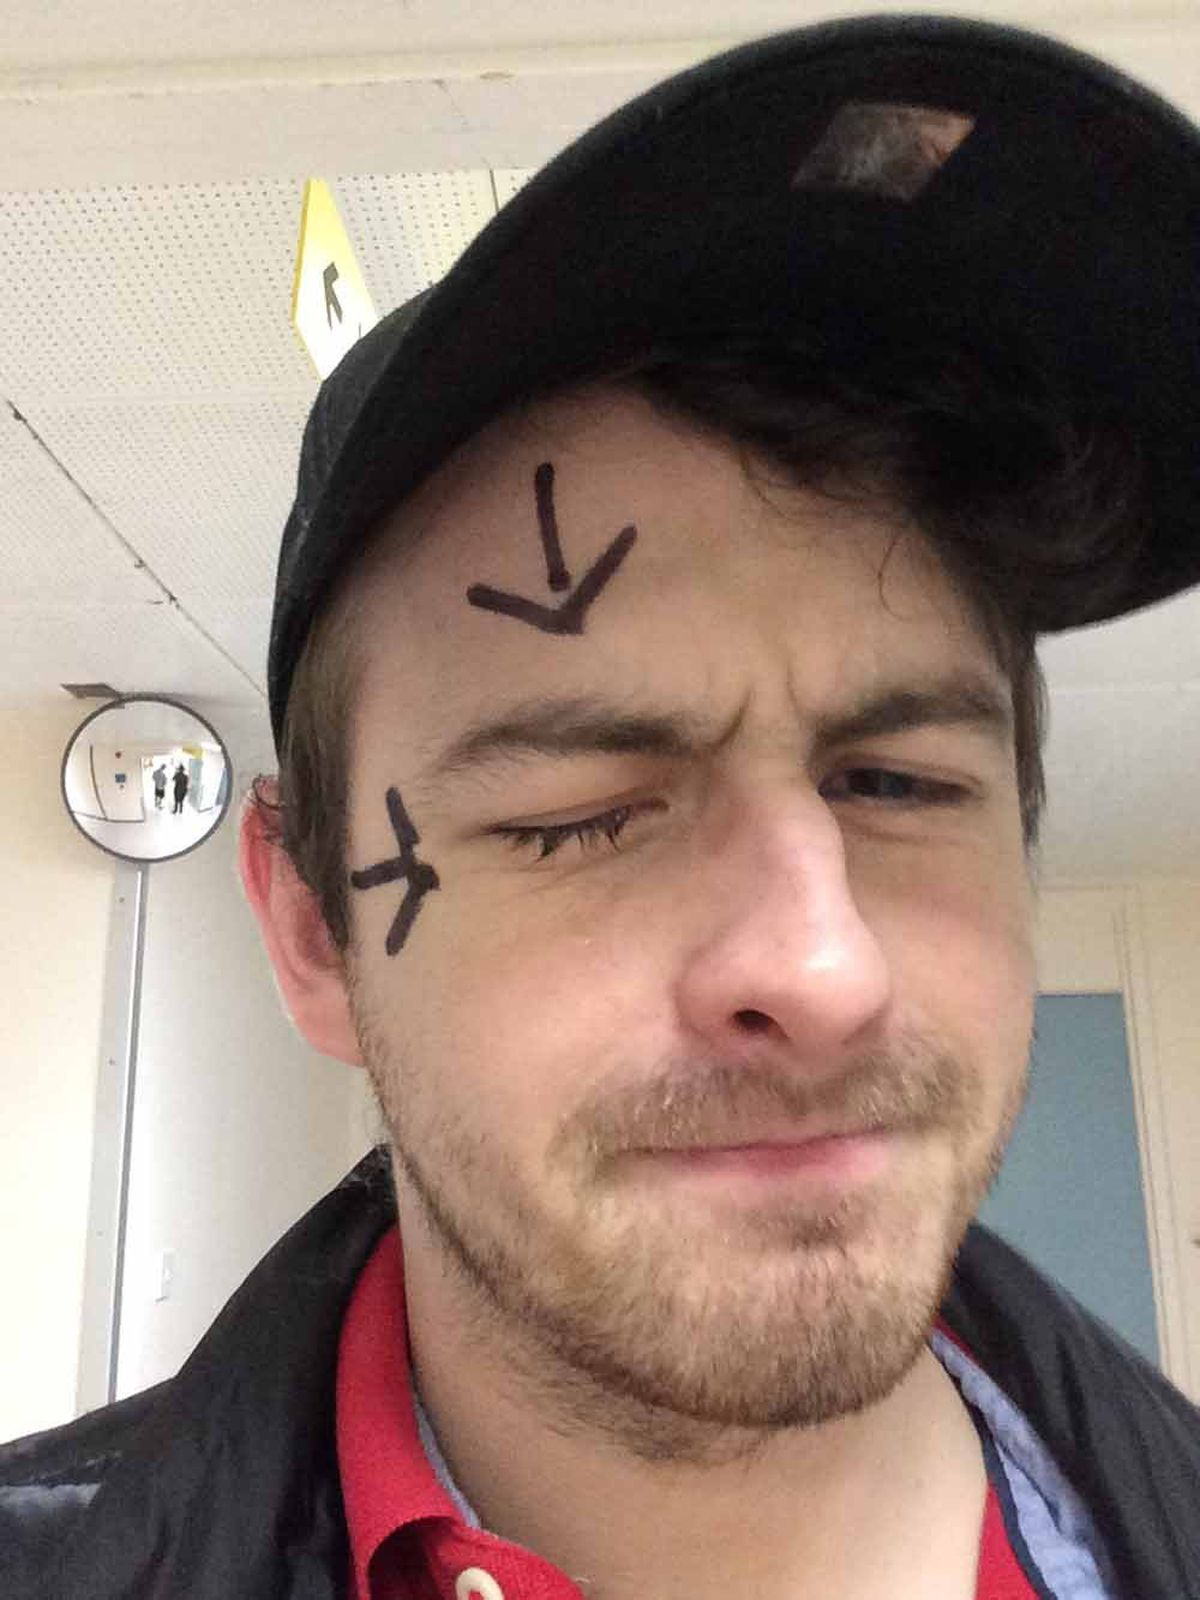 Arrows painted on before surgery, just in case the surgeon forgot which eye